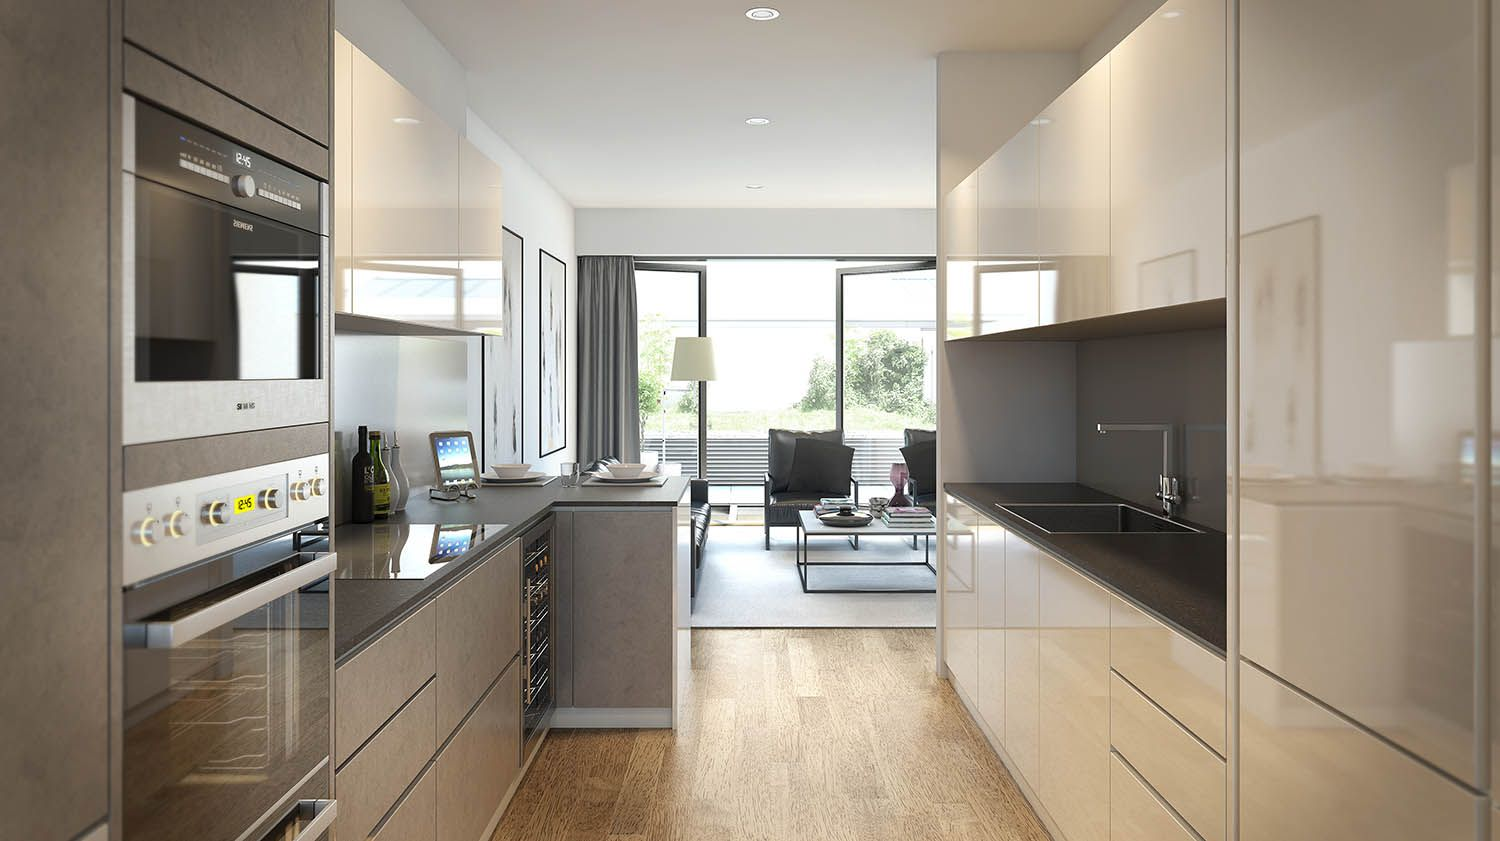 Arygll Place Taylor Wimpey Taylor wimpey, Kitchen